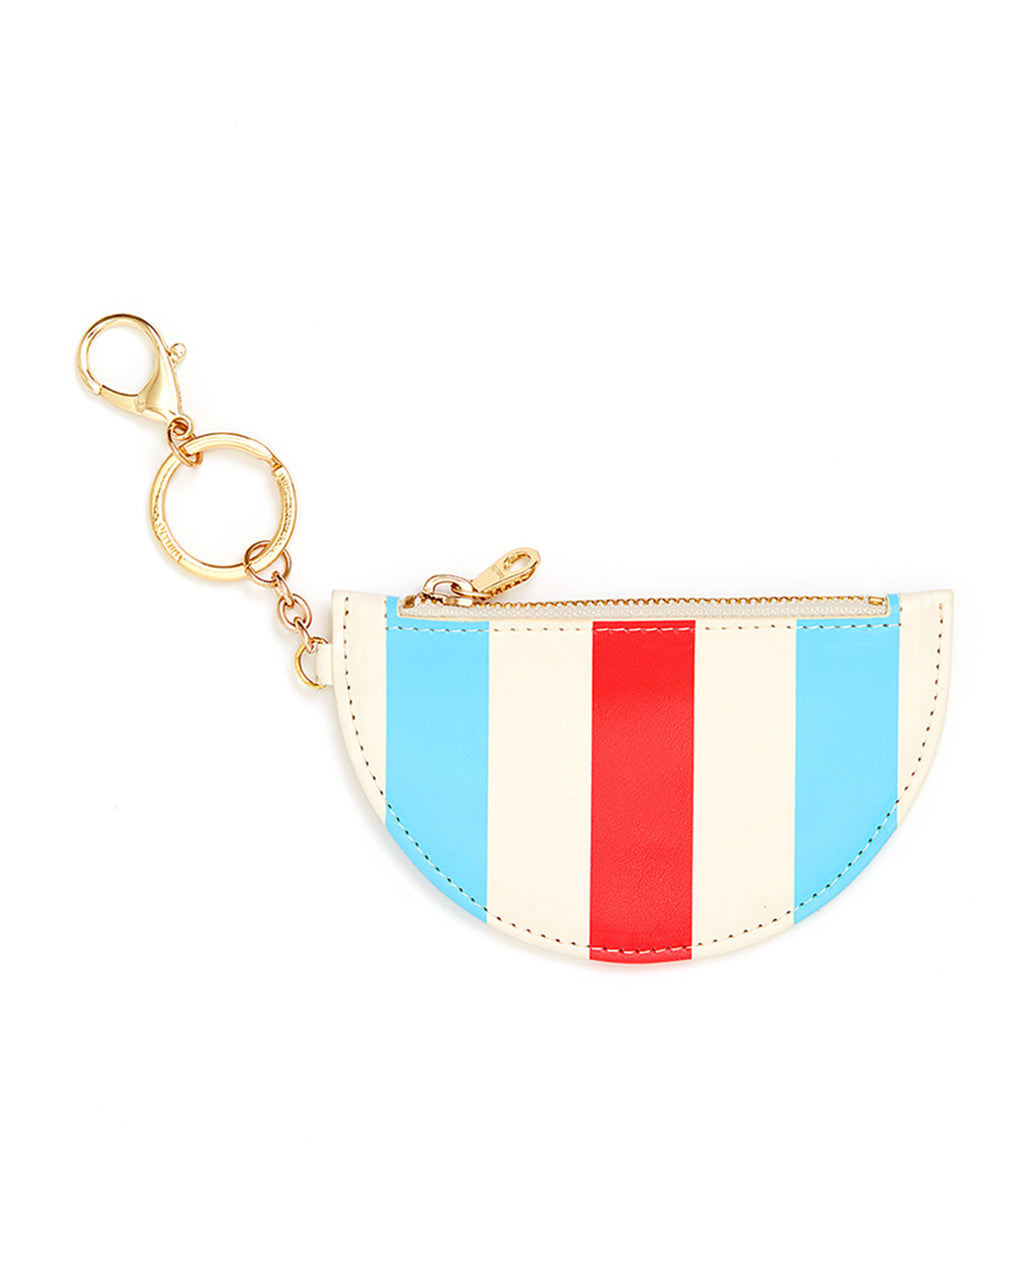 zip zip keychain with pouch - national stripe